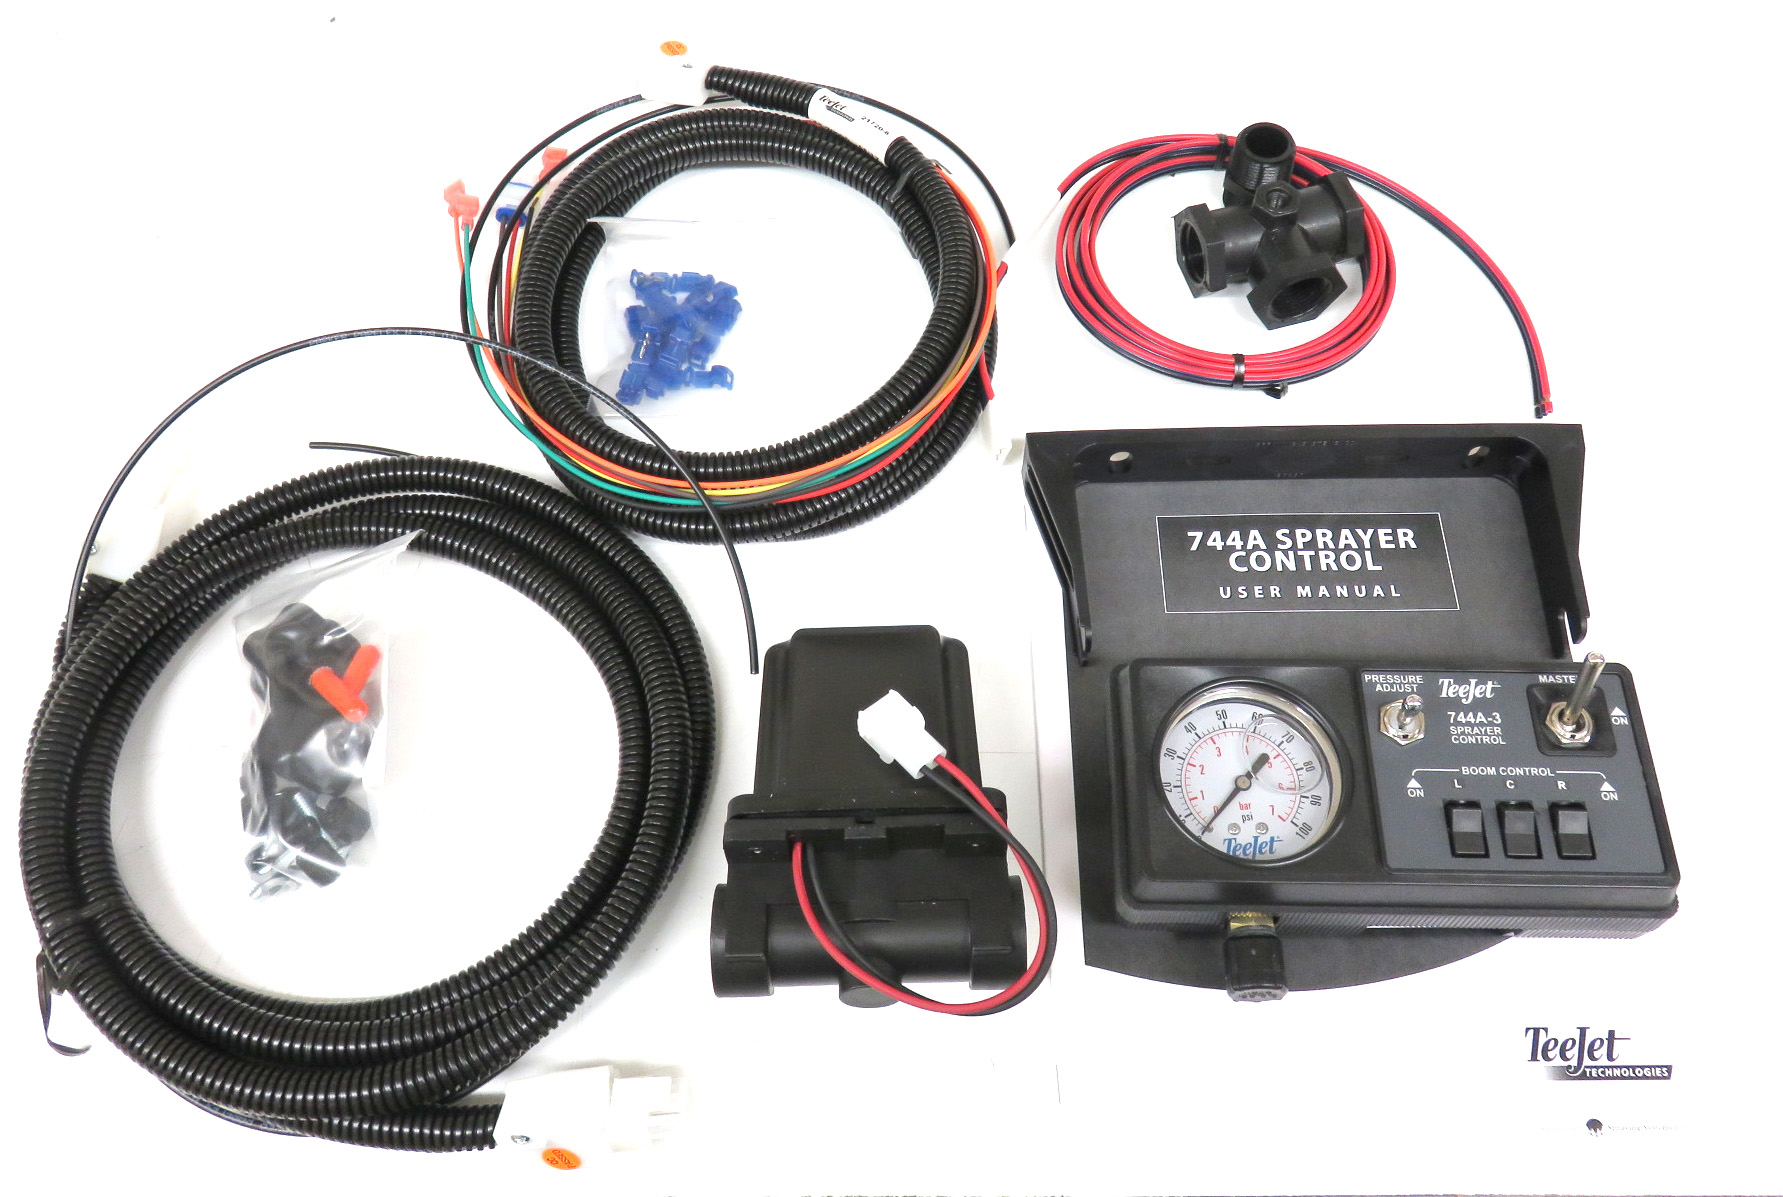 hight resolution of 90 50161 744a control kit with 3 4 regulating valve90 50161 744a kit w 100 psi gauge solenoid harness 3 4 244c butterfly regulator no valves st